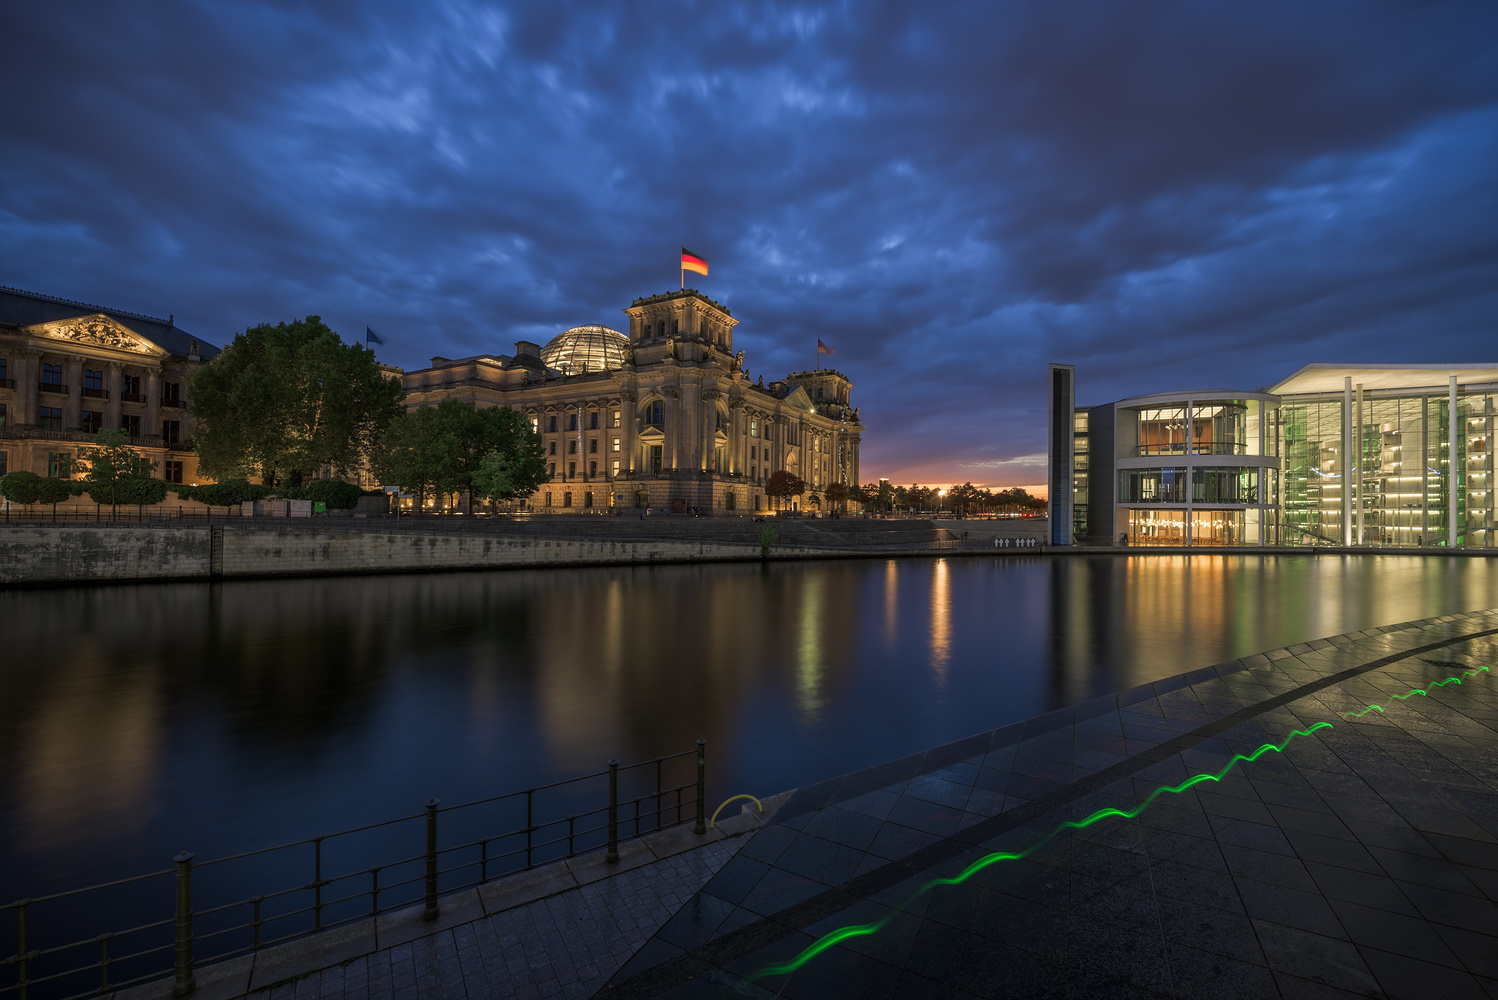 Berlin - government district by Bruce Girault